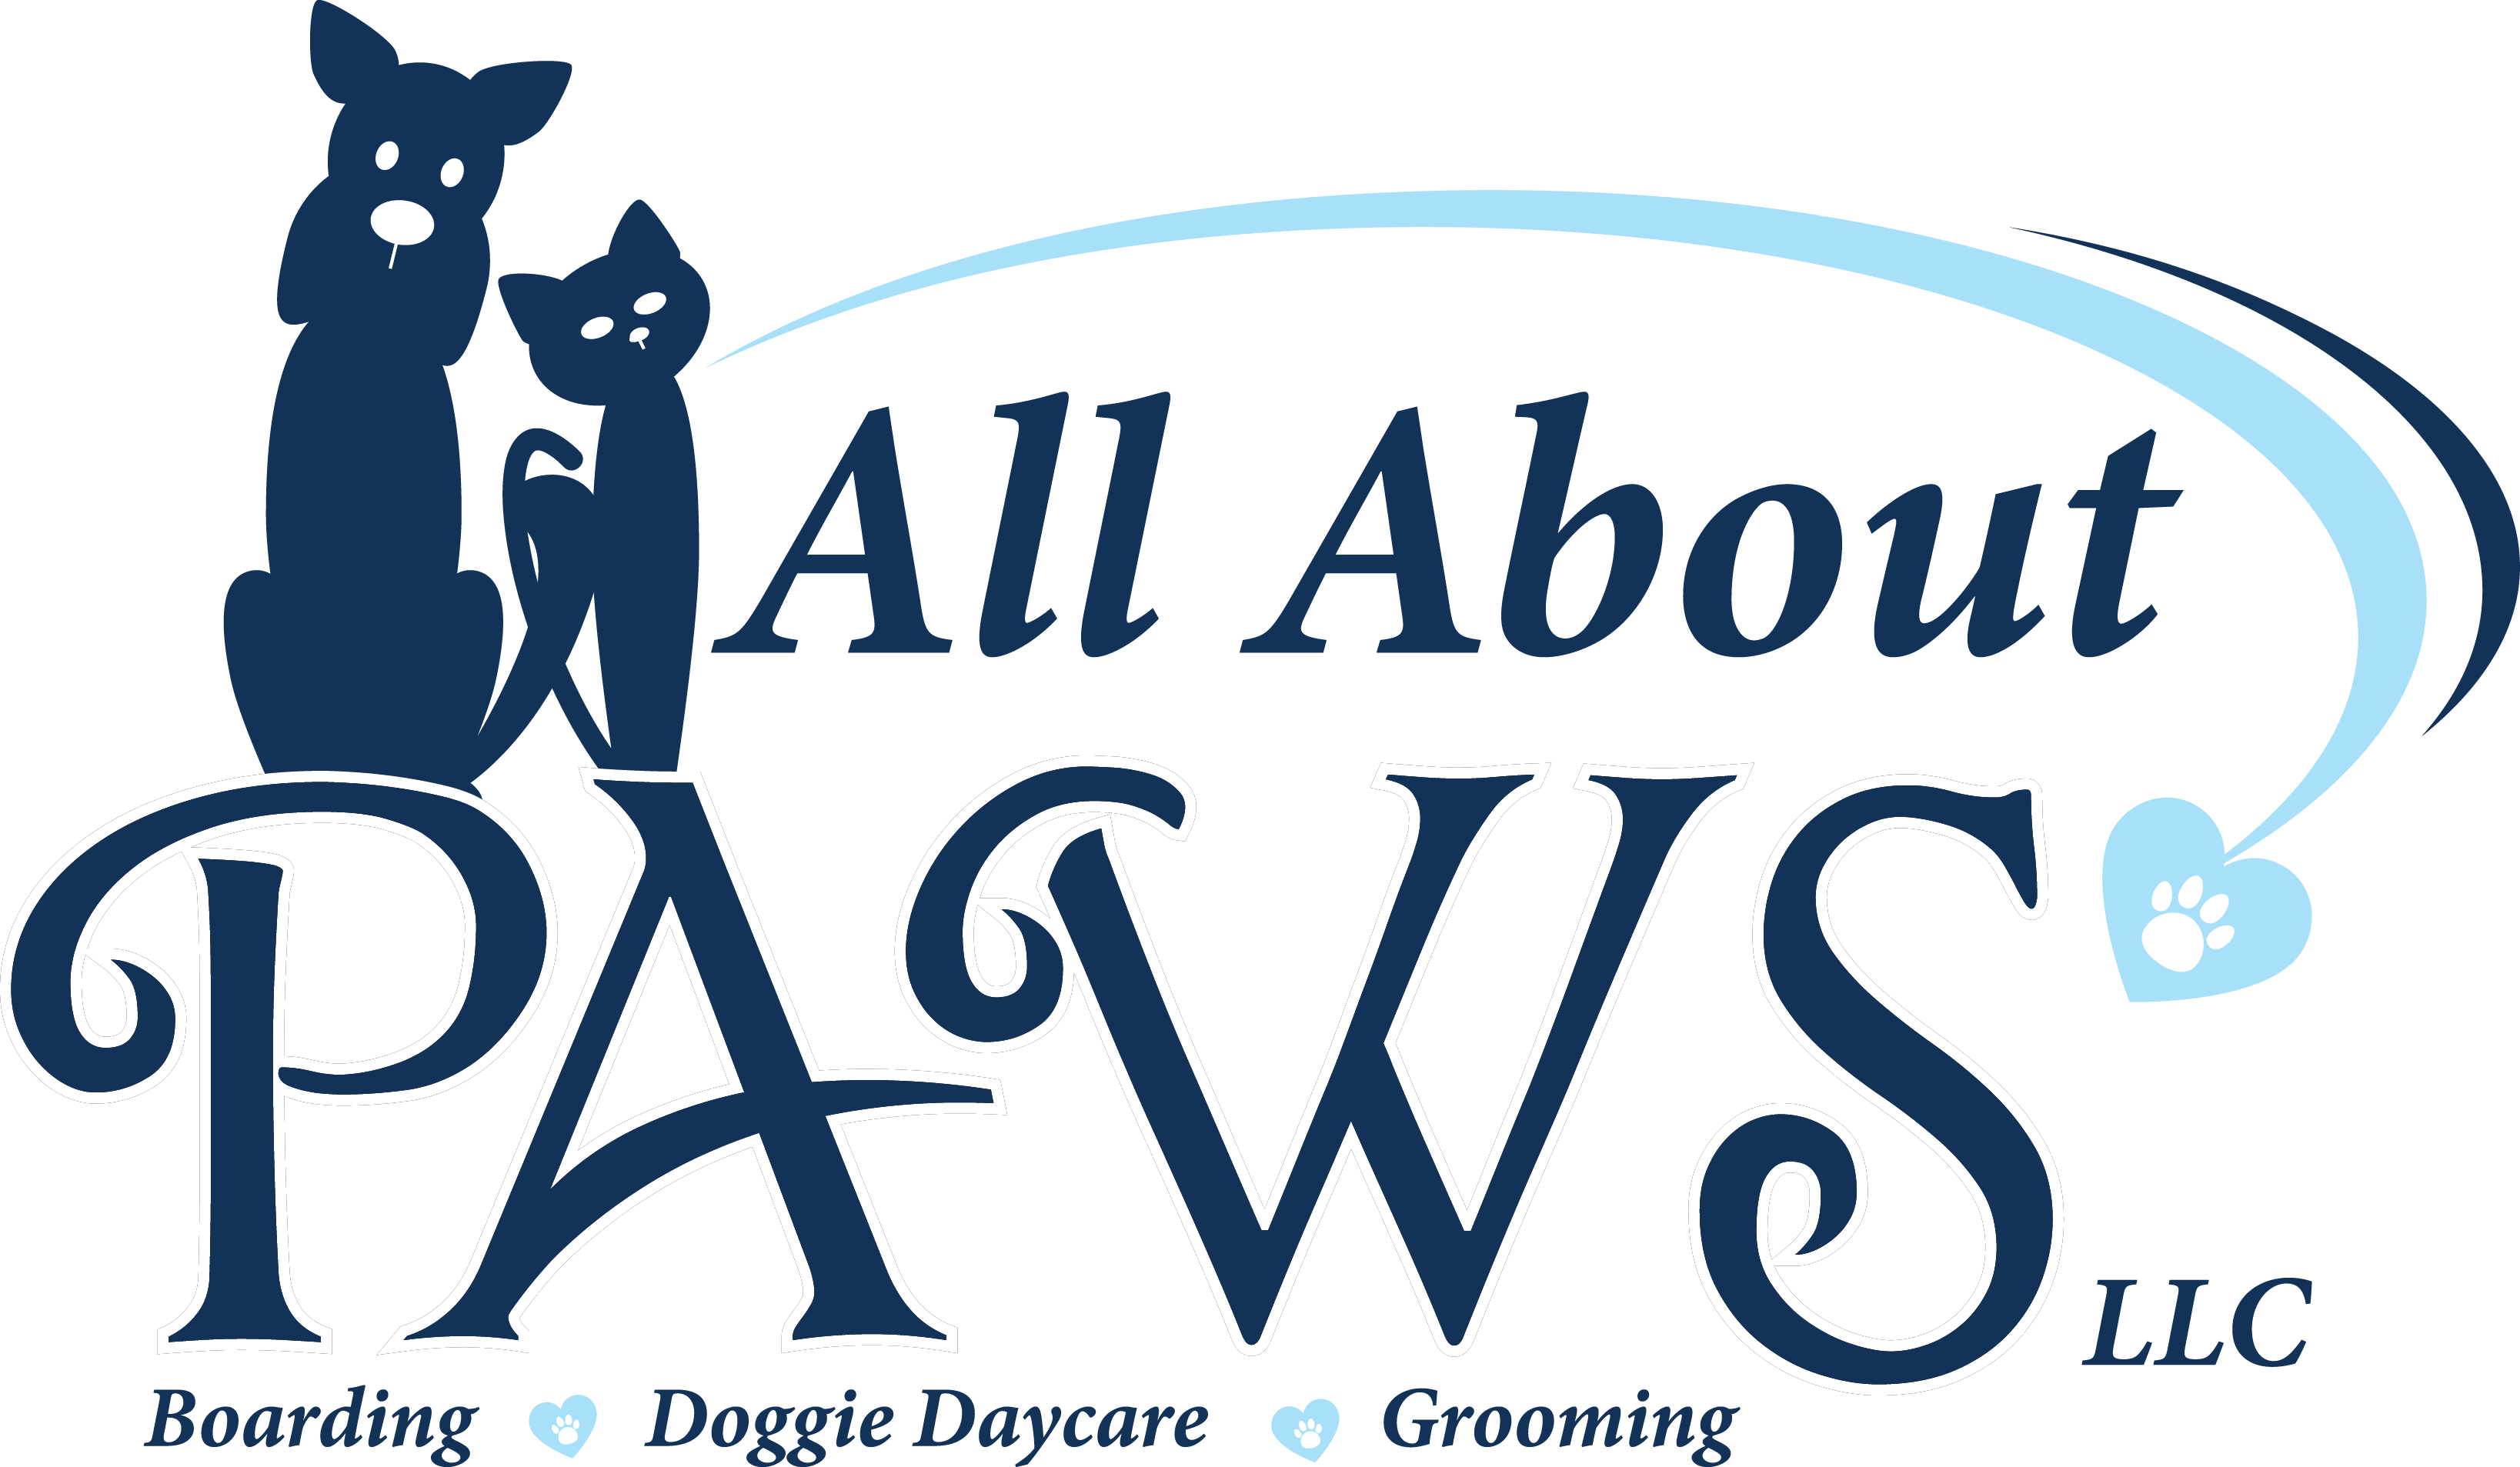 the all about paws logo with two cats in top left all in navy blue